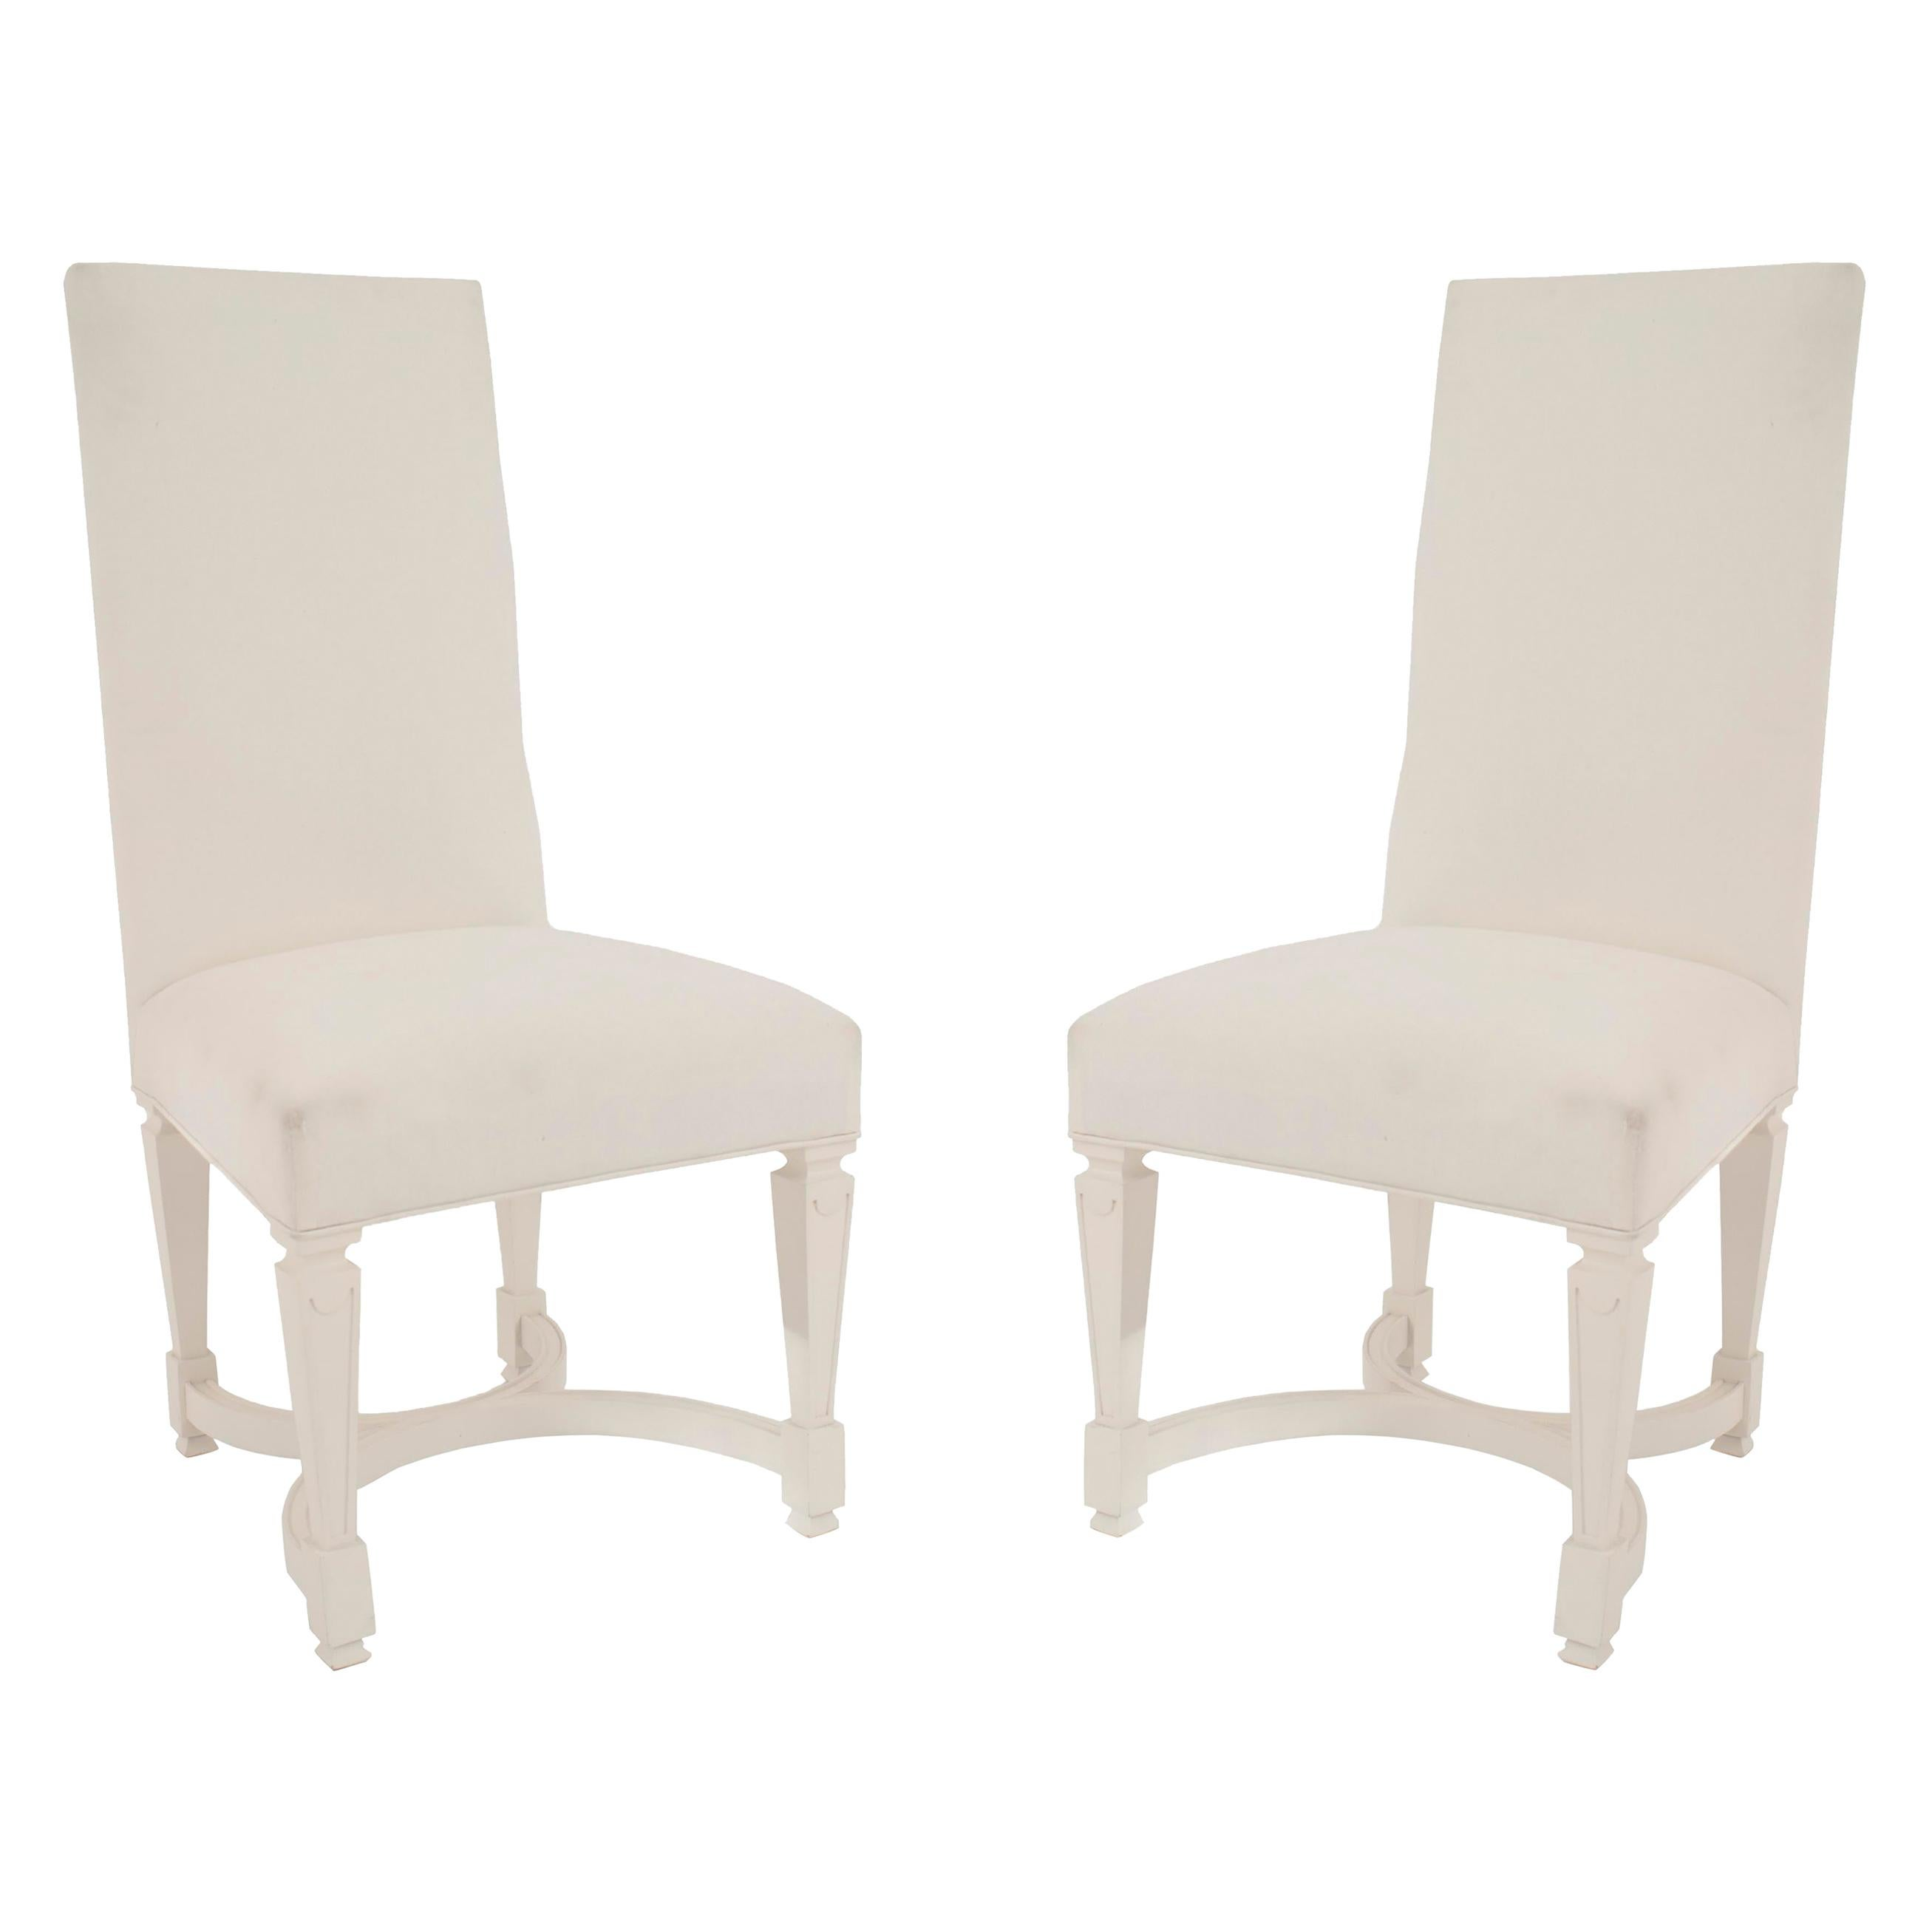 Andre Arbus French Midcentury Upholstered Side Chairs, Set of 4